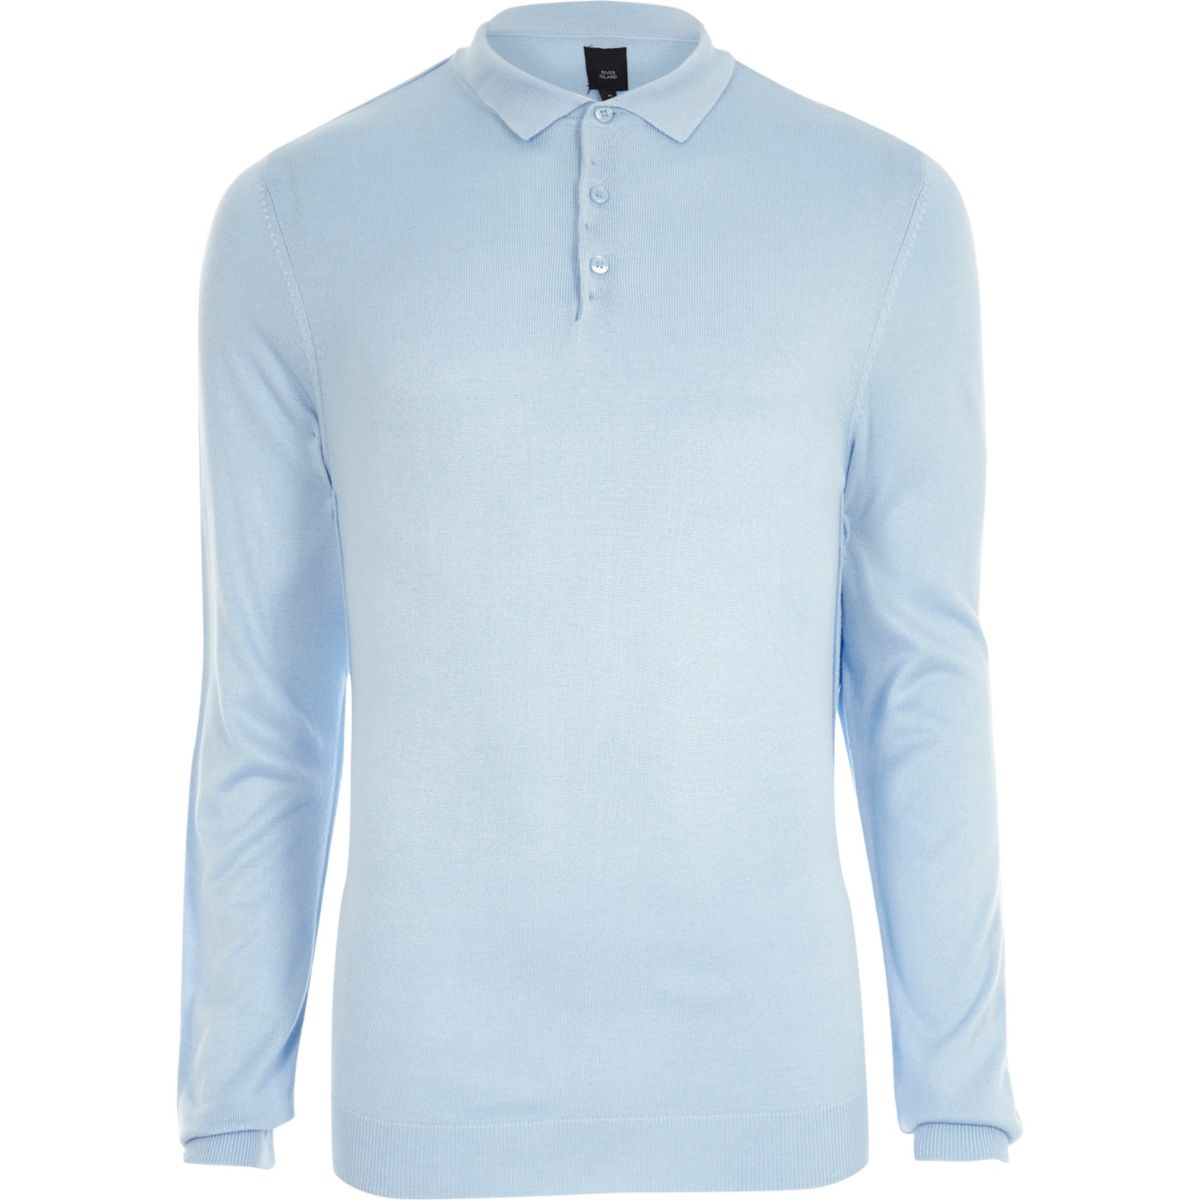 Blue knitted long sleeve slim fit polo shirt